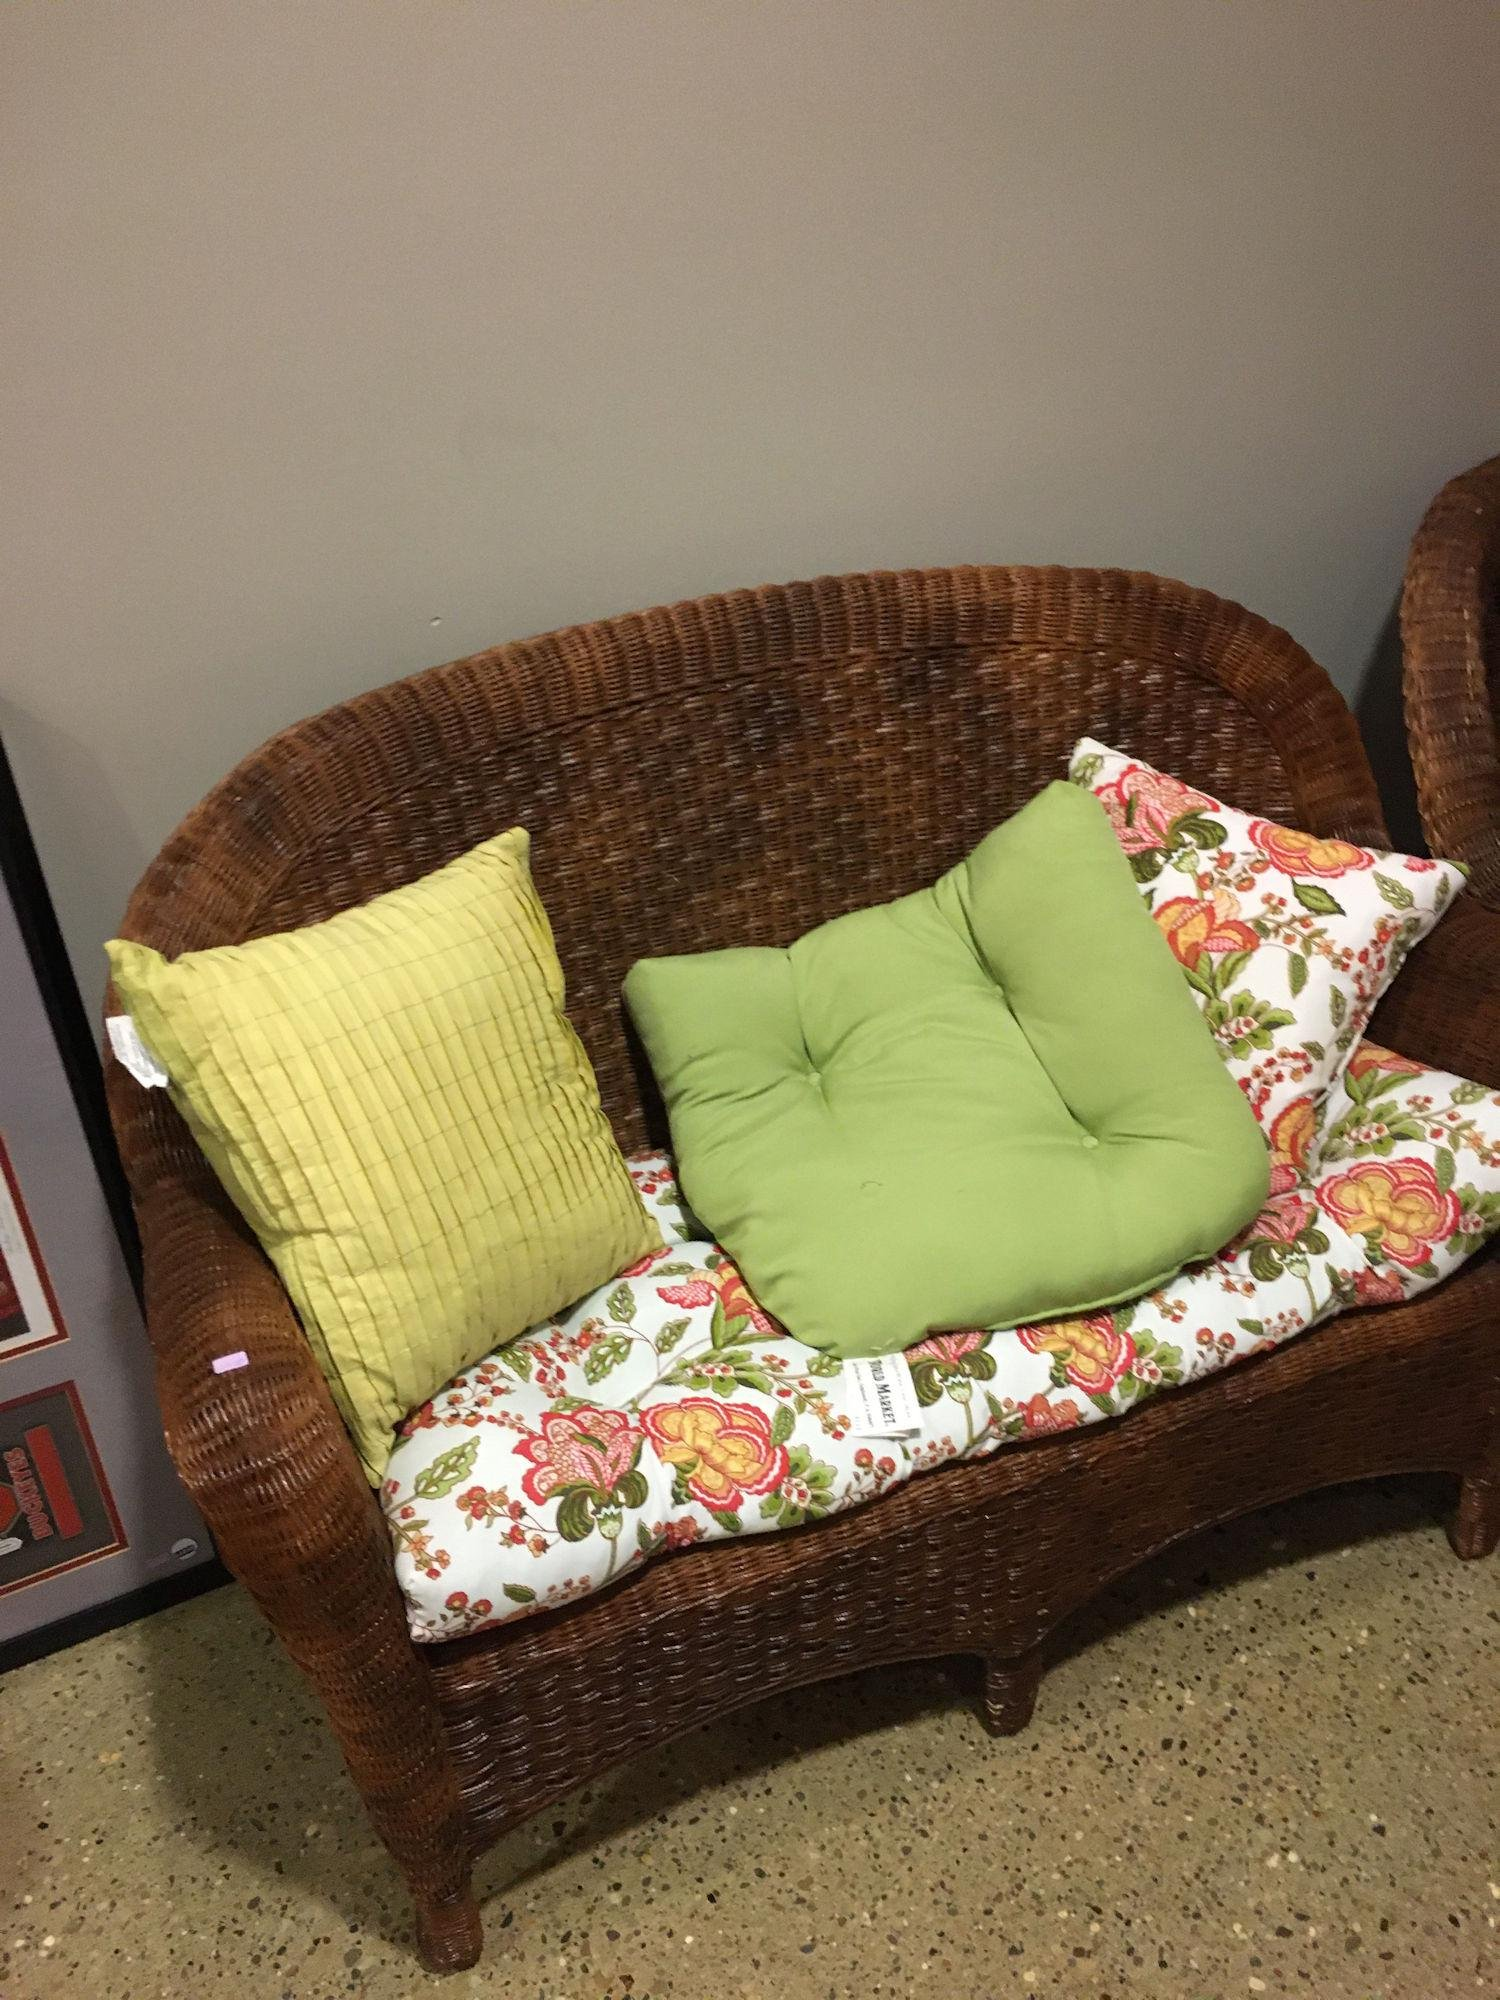 WICKER PATIO SET, INCLUDES LOVESEAT, CHAIR, AND STAND